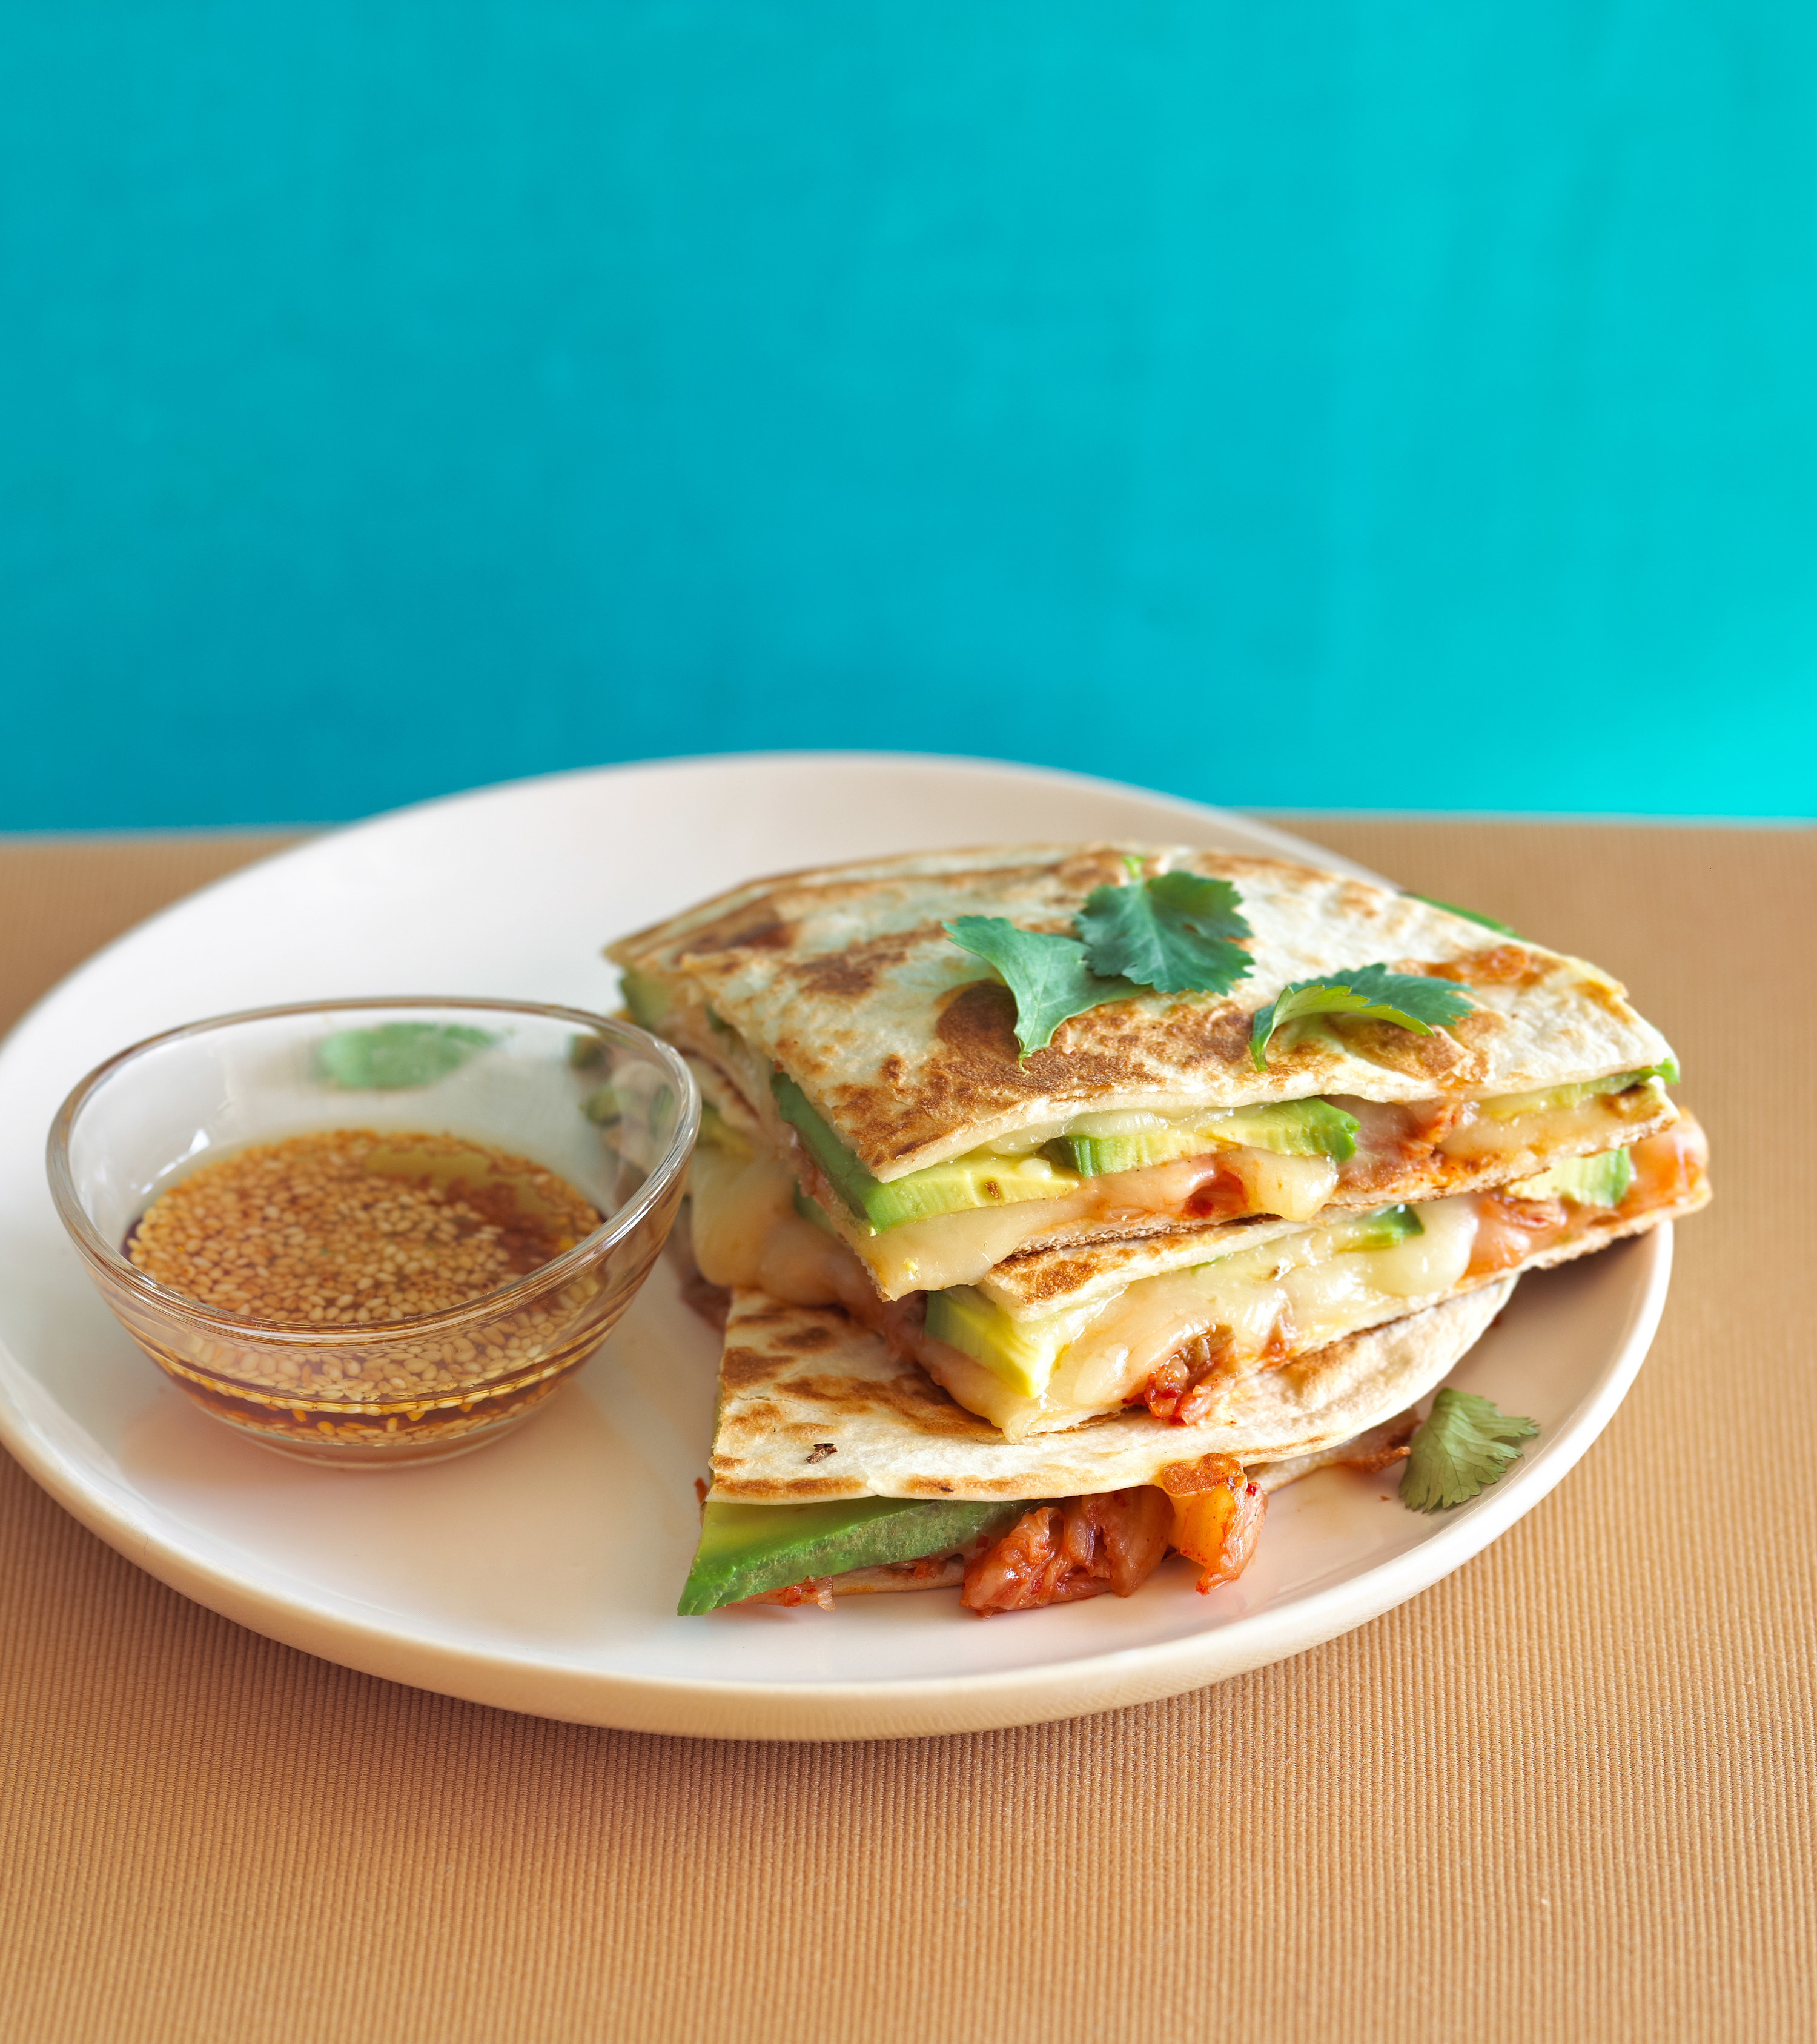 An image of a quesadilla on a plate